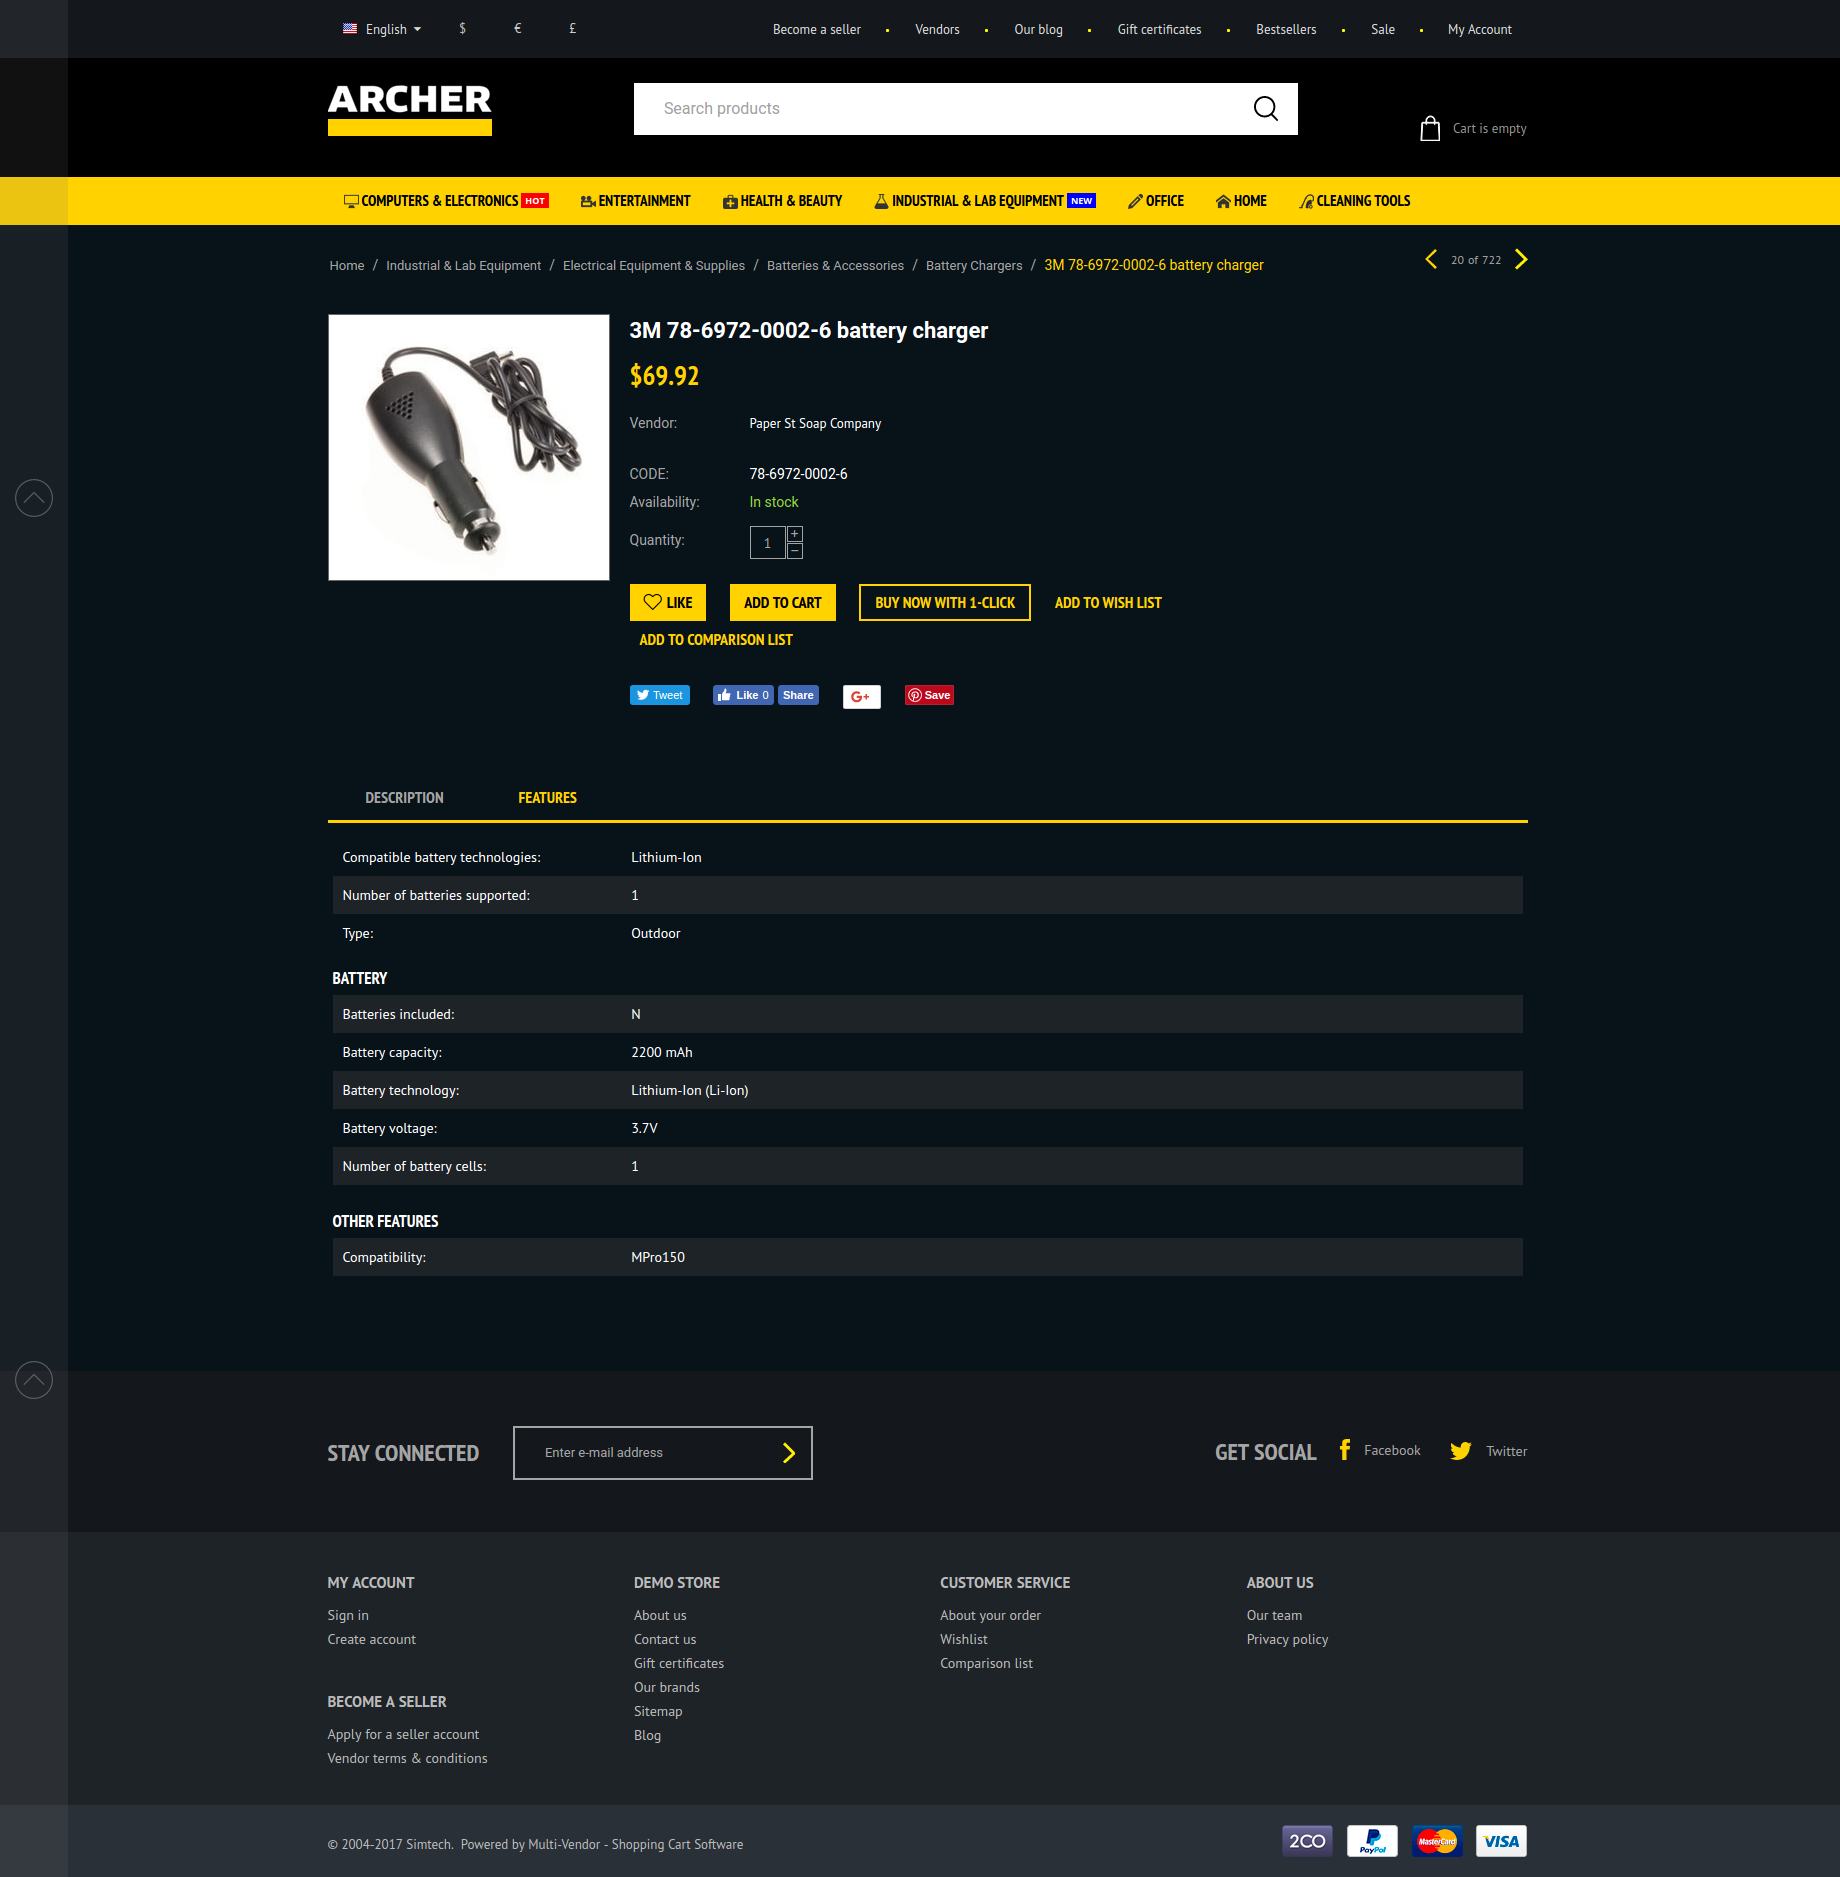 archer-theme-product-page.png?1515746557